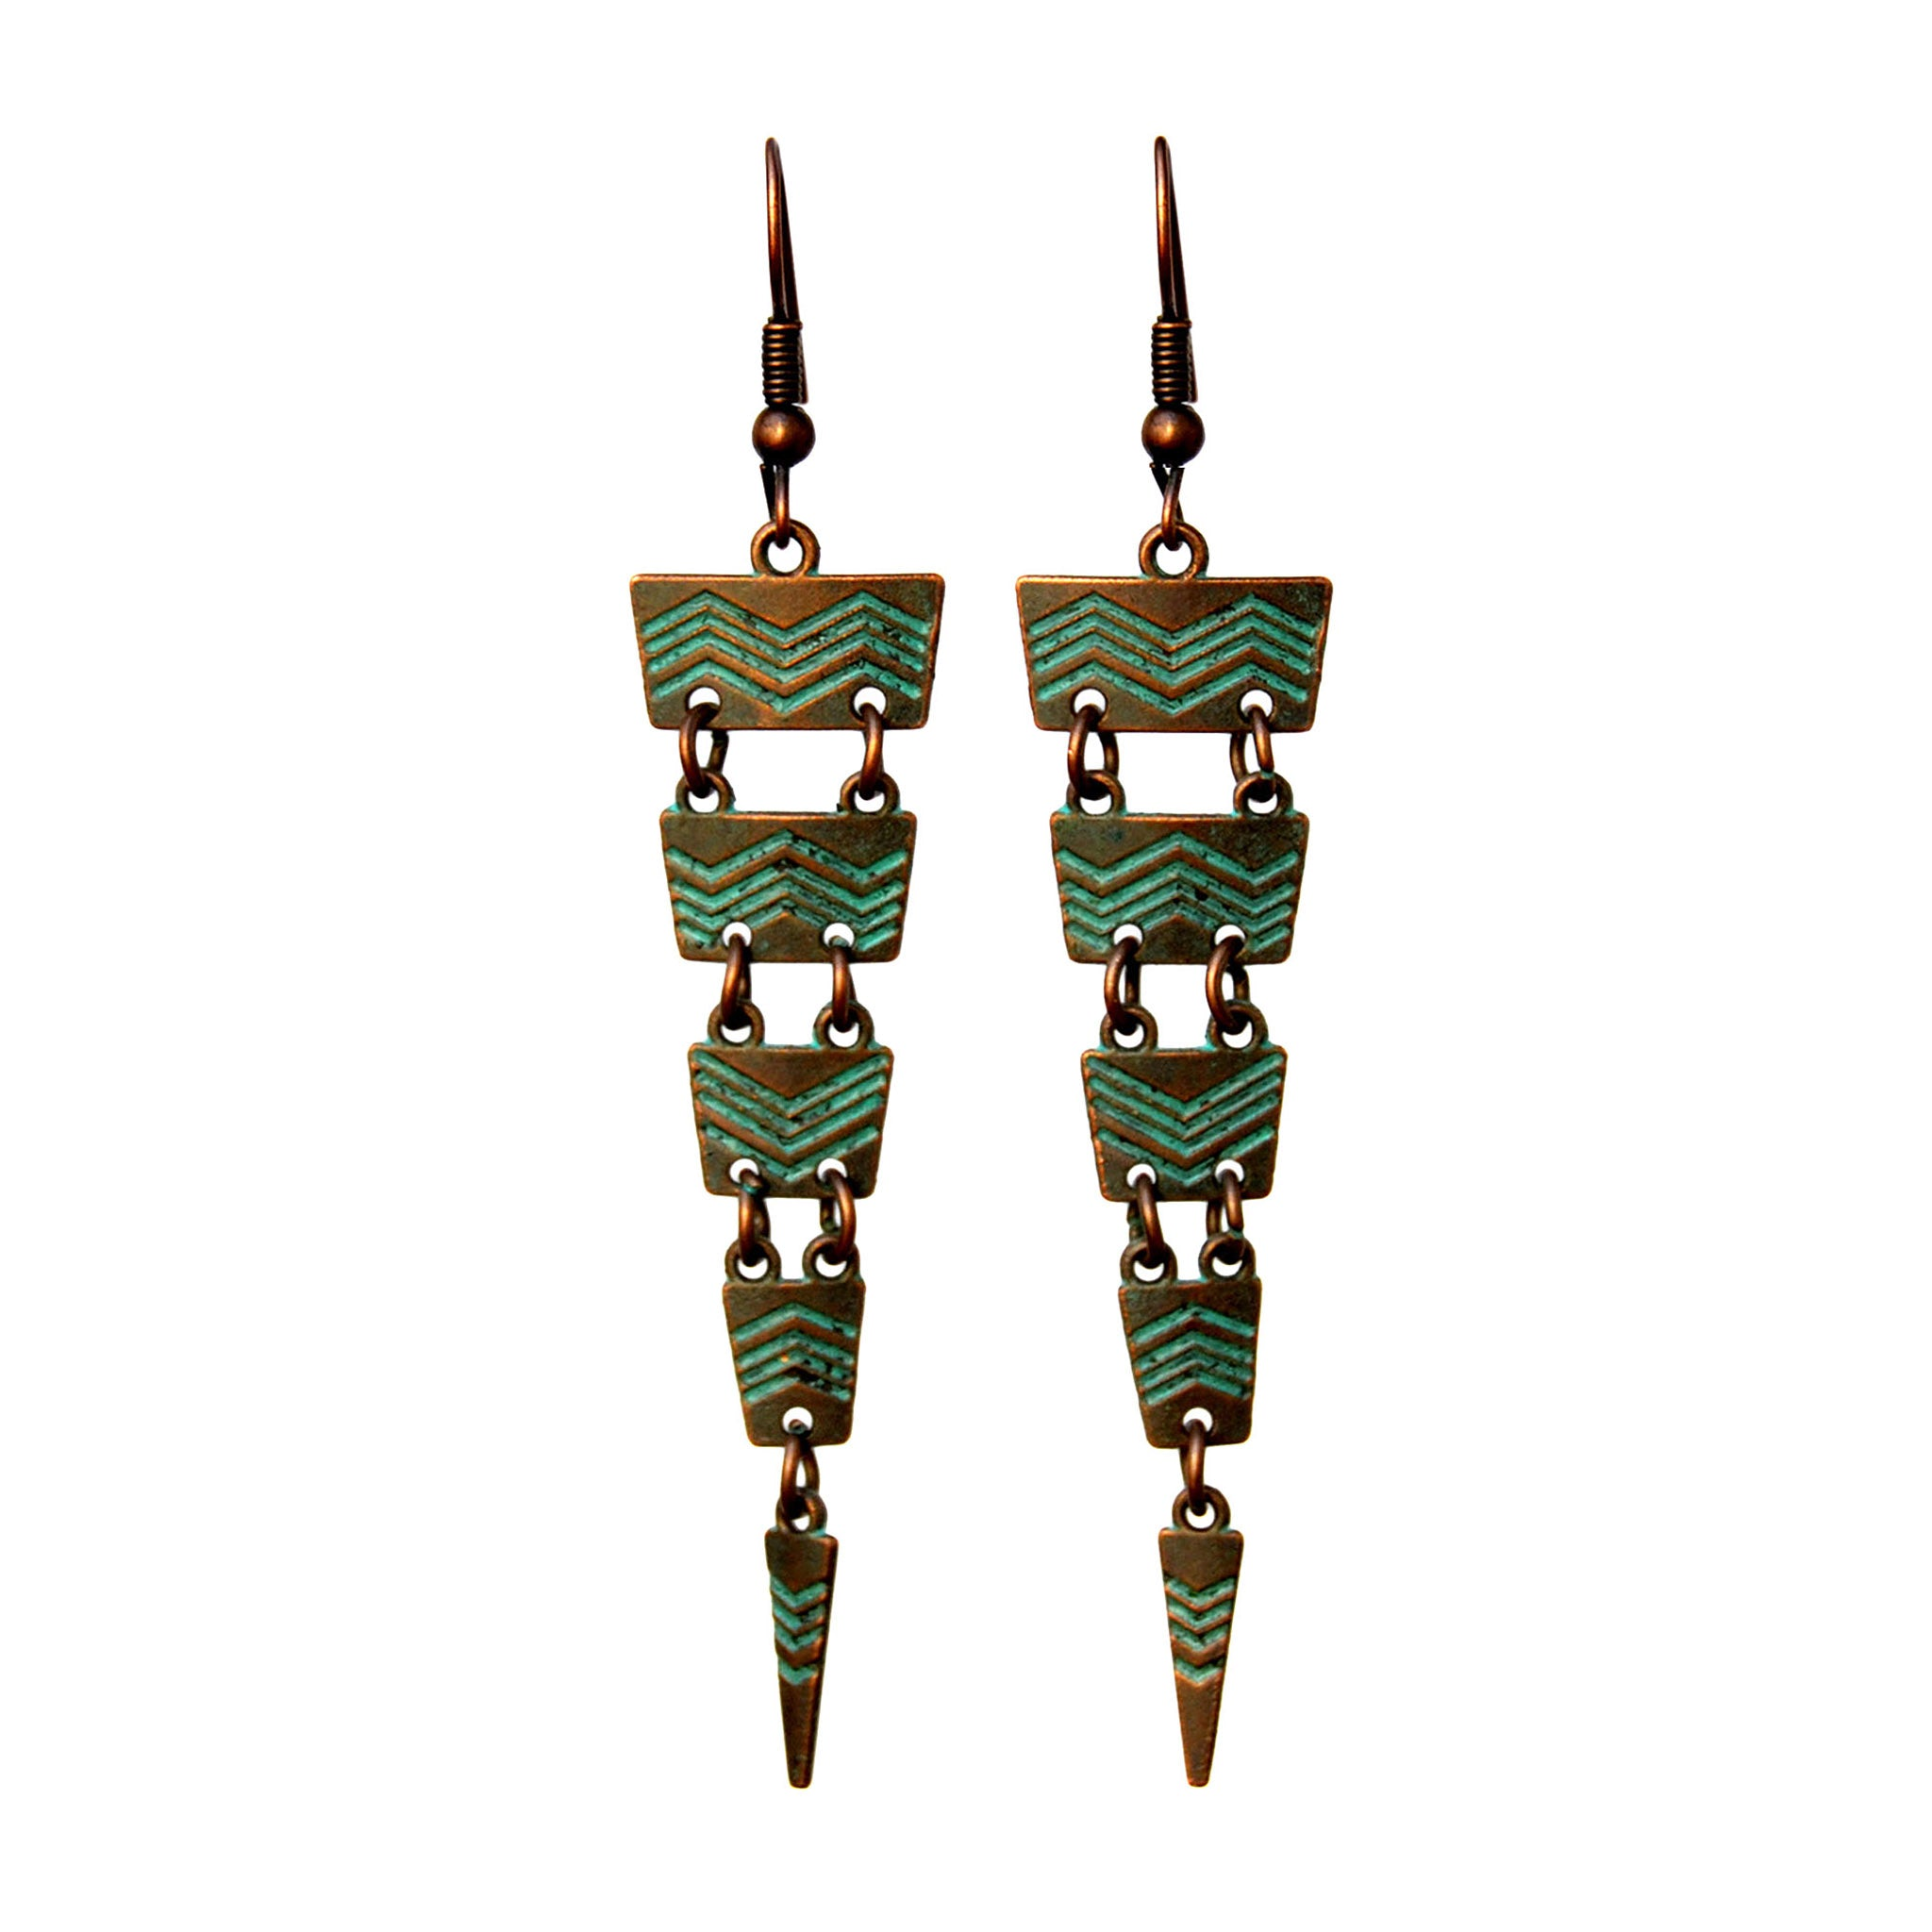 Verdigris cascade earrings